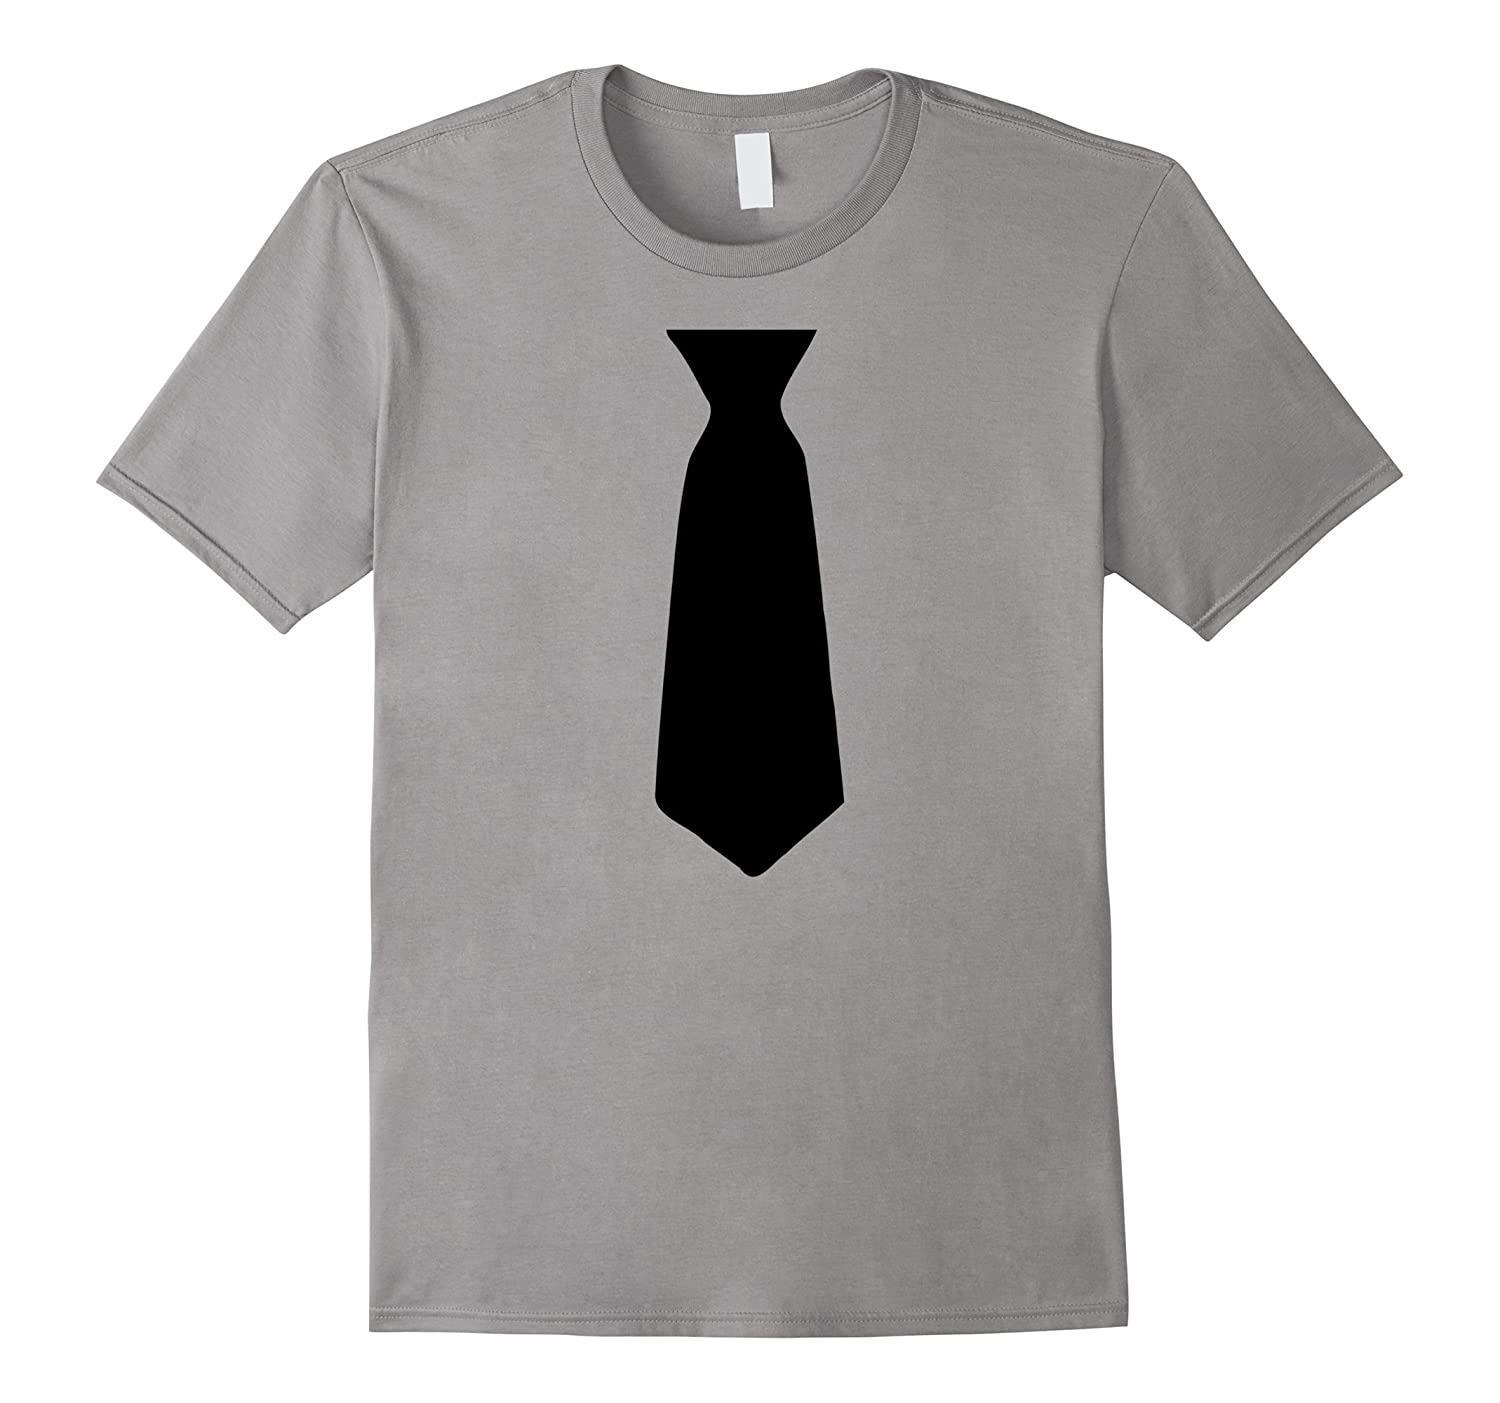 Funny Novelty Tie T Shirt - Prom Fancy Dress Costume Party-Vaci